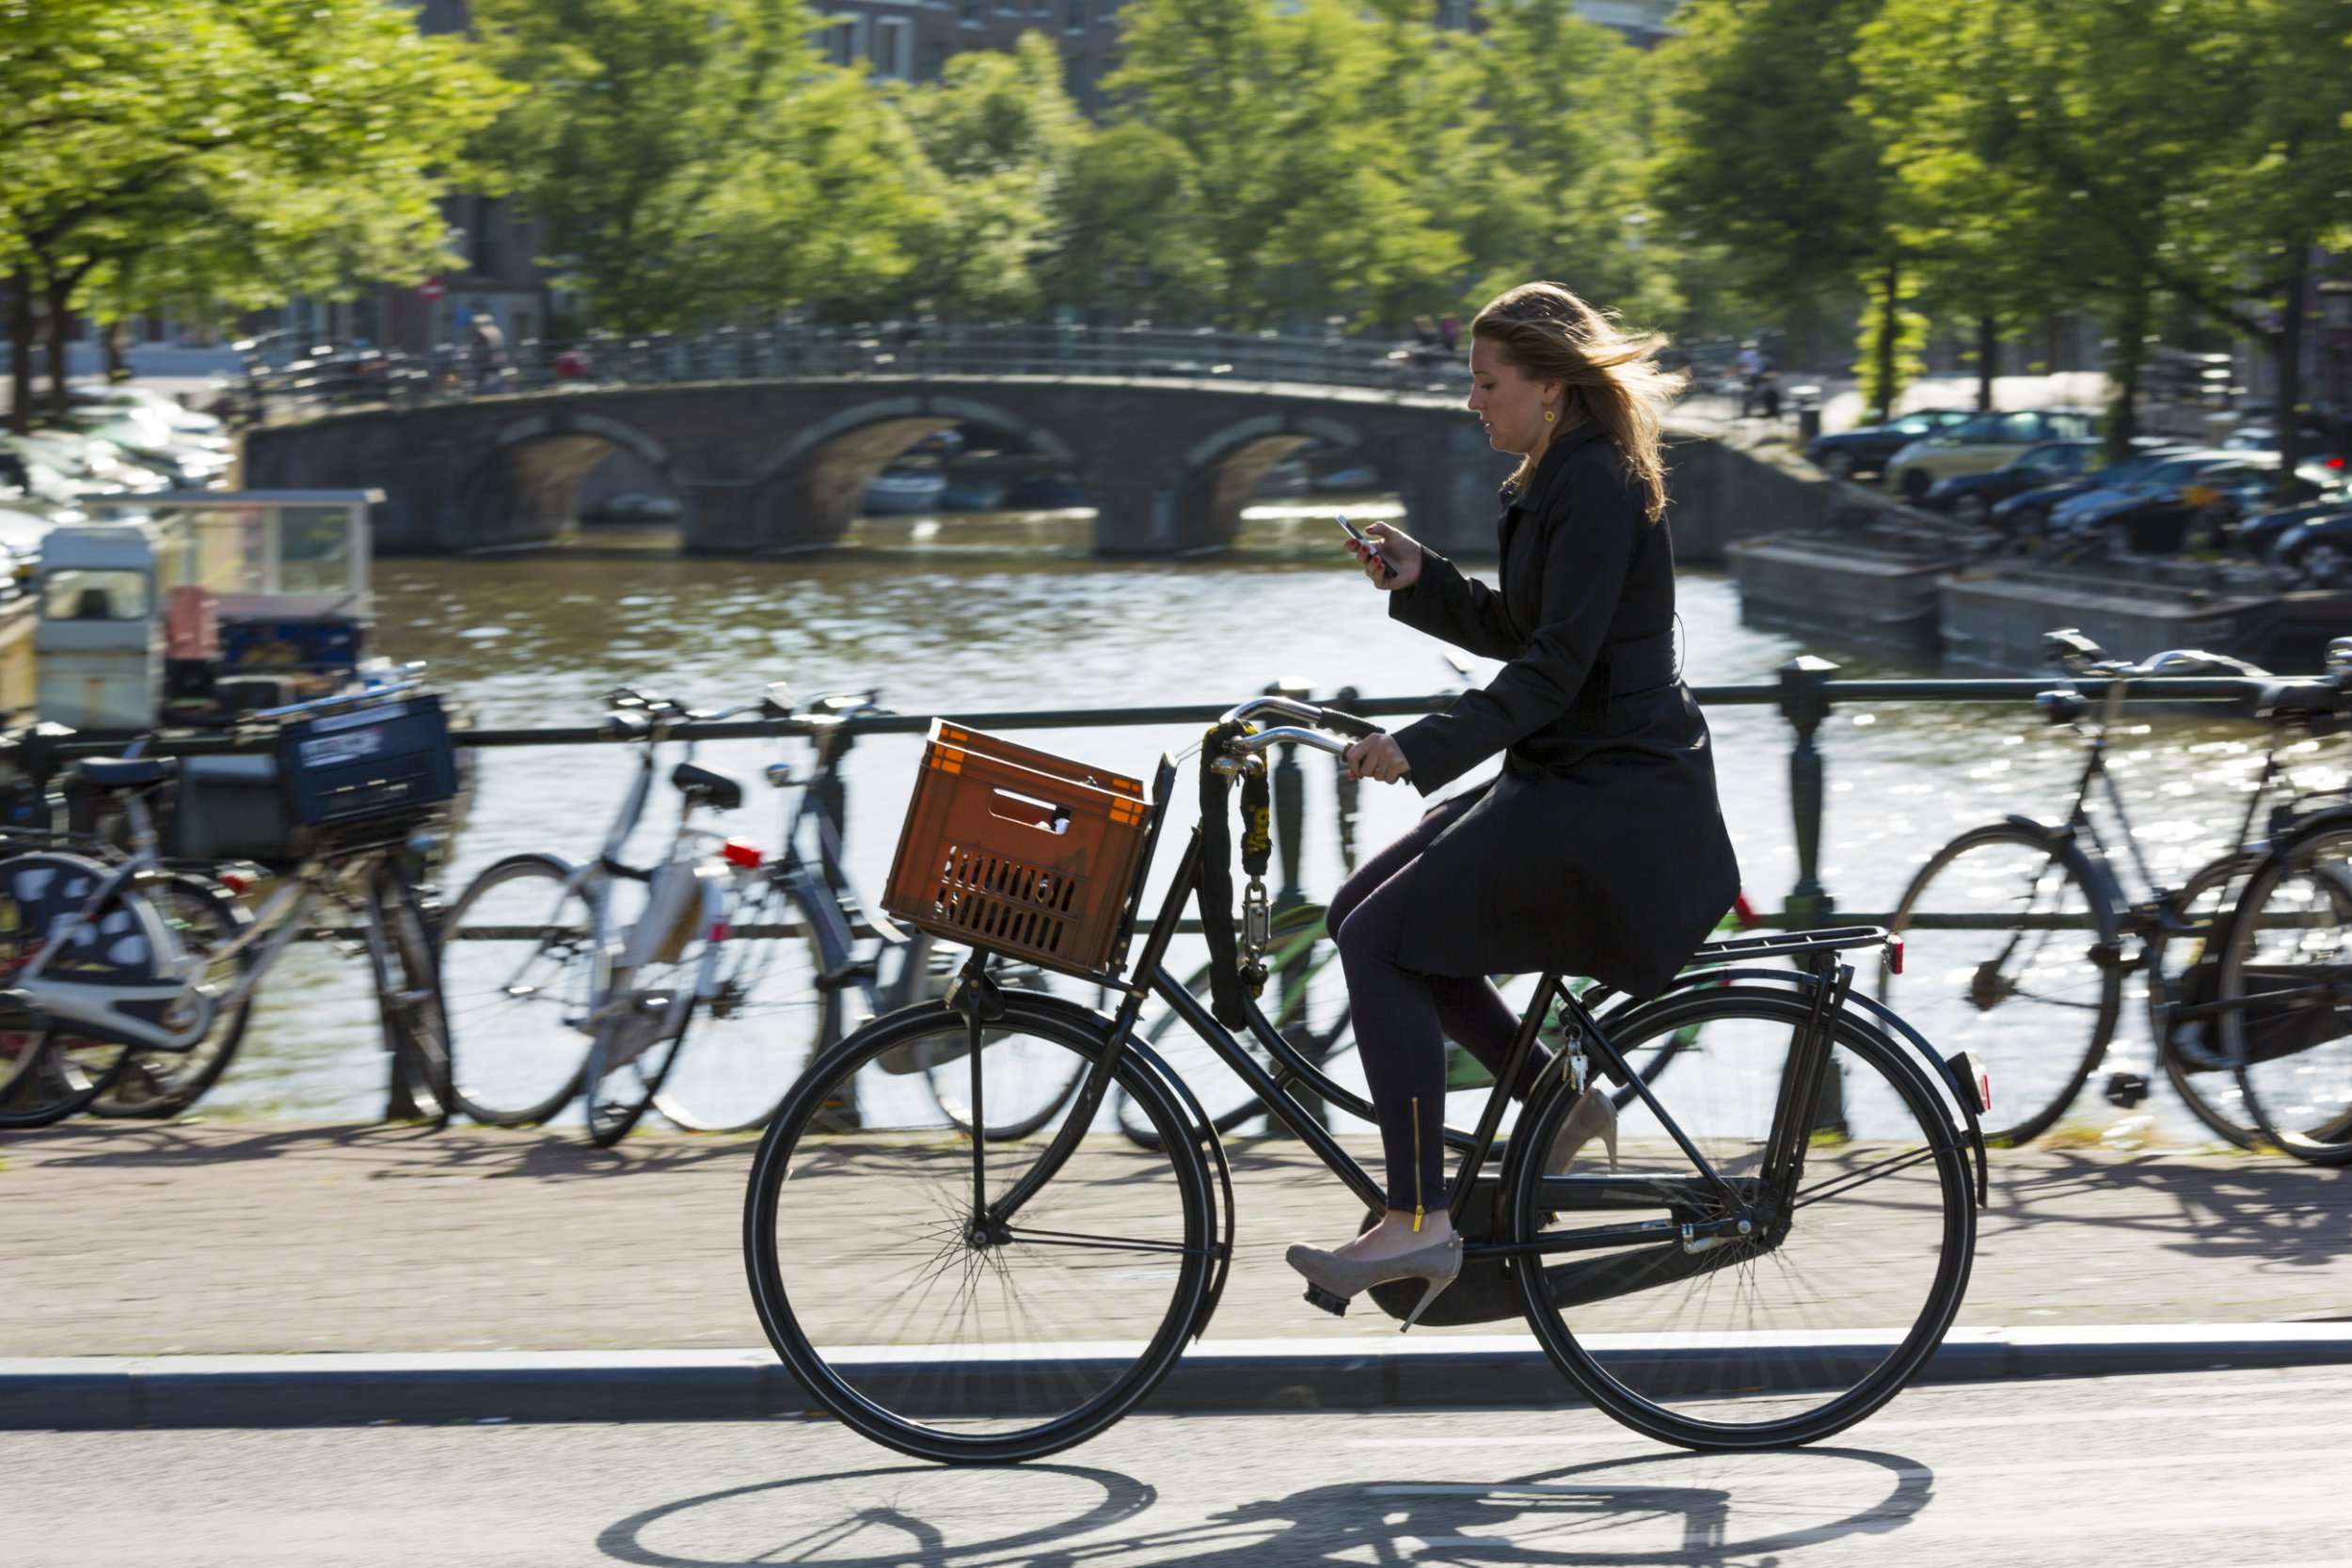 Young woman wearing high heels shoes, carrying iPhone cycling out for the evening across bridge in Amsterdam, Holland. (Photo by Tim Graham/Getty Images)